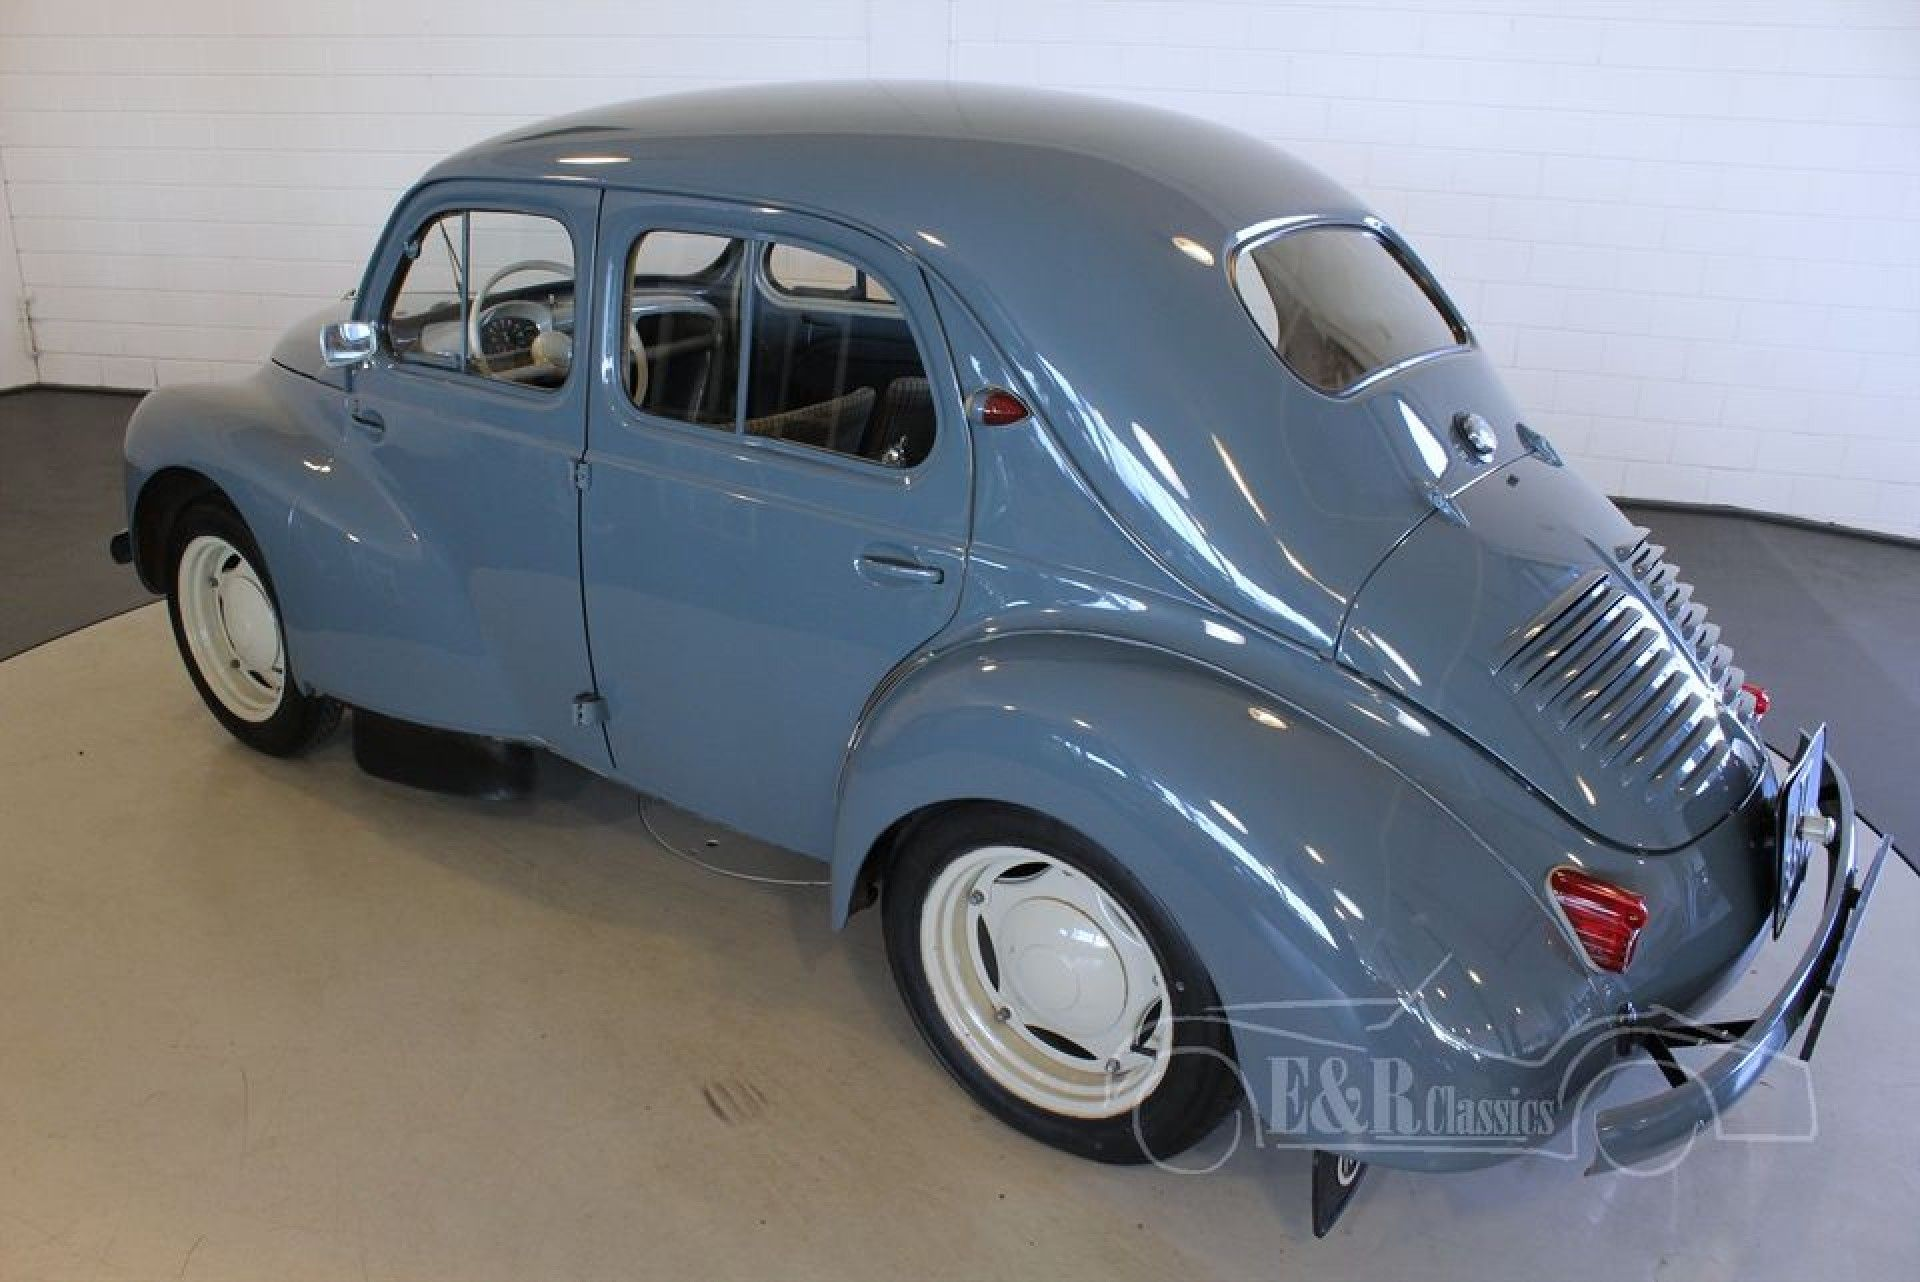 Renault 4cv 1956 For Sale At Erclassics Renault 4 Renault Cars For Sale